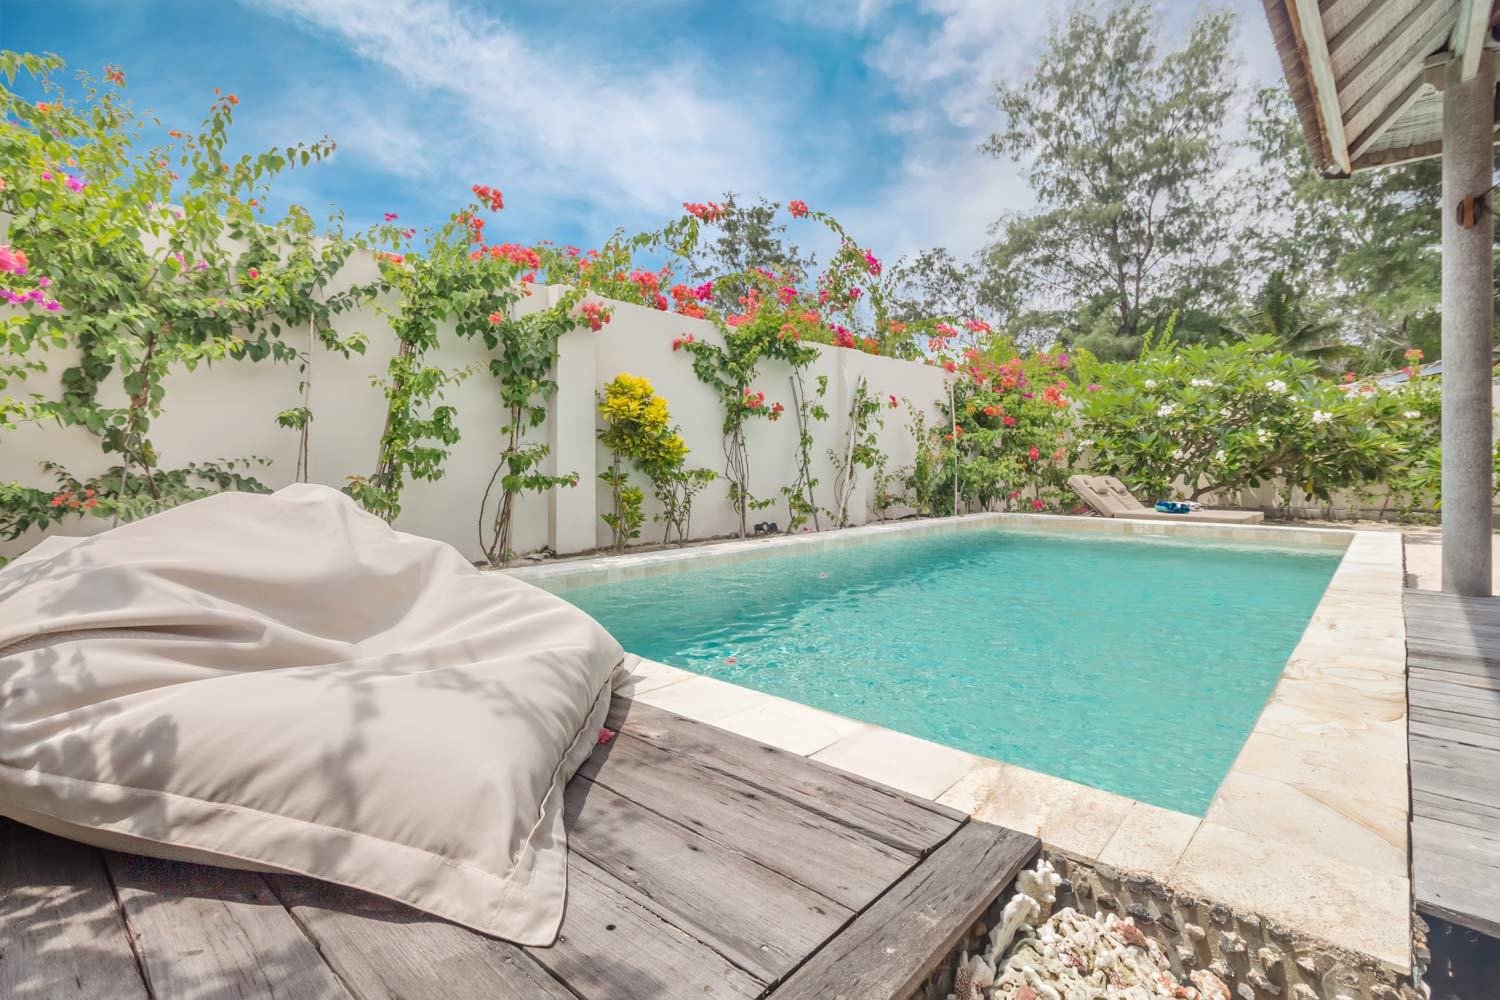 2 bedrooms  private pool and garden - Avia Villa Resort Gili Meno